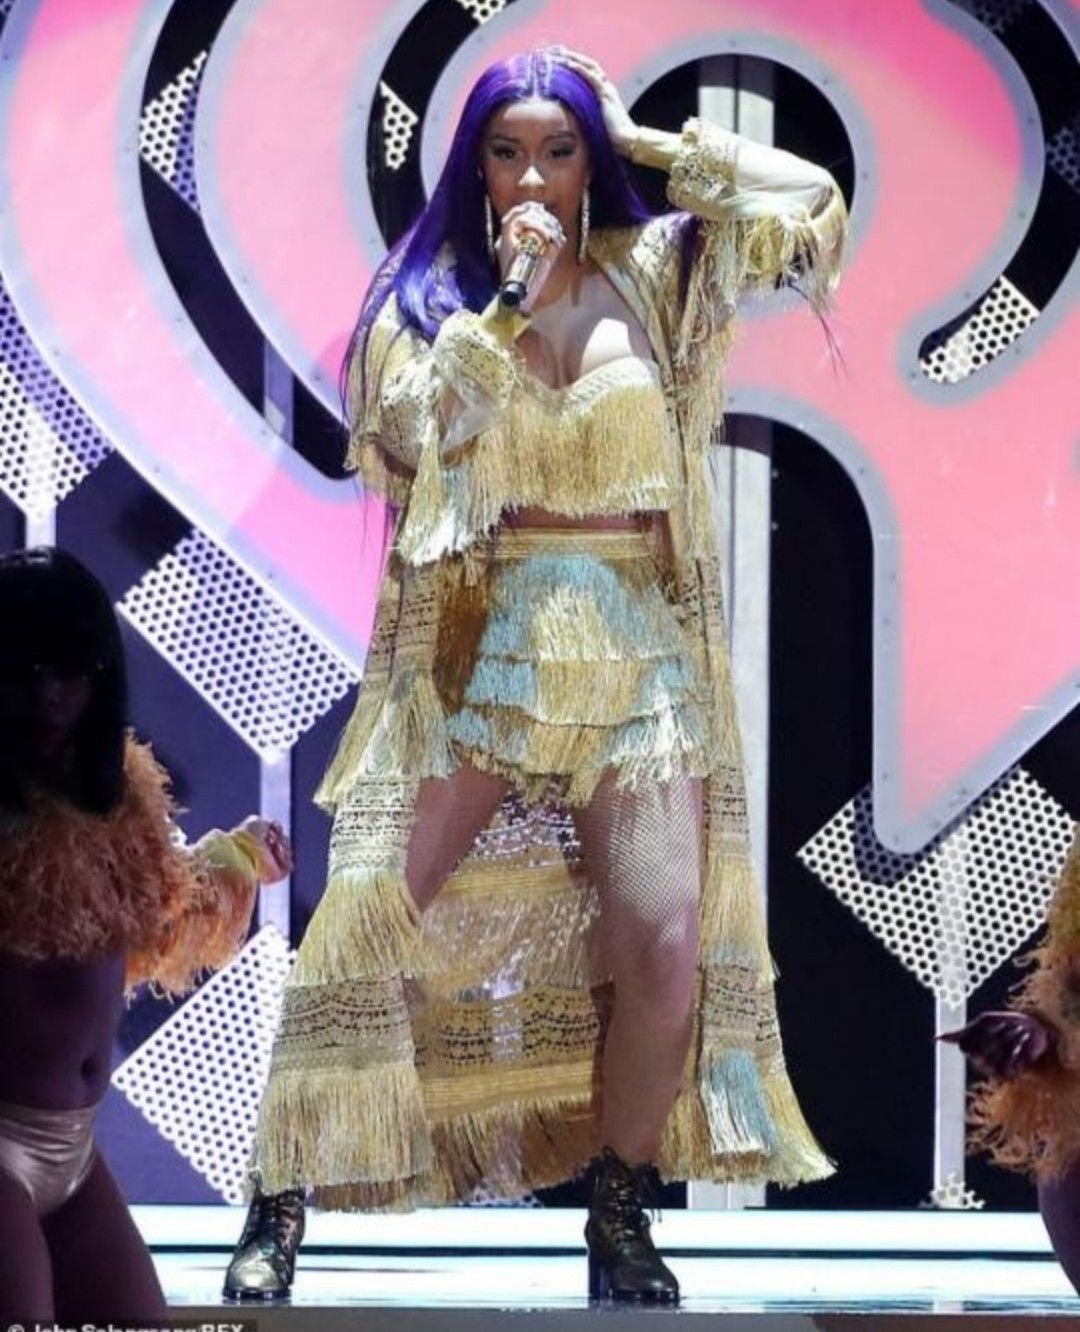 Cardi B Flaunts 6 Pack Abs In Instagram Video Watch Clip: Pin By Jamilah On Cardi B